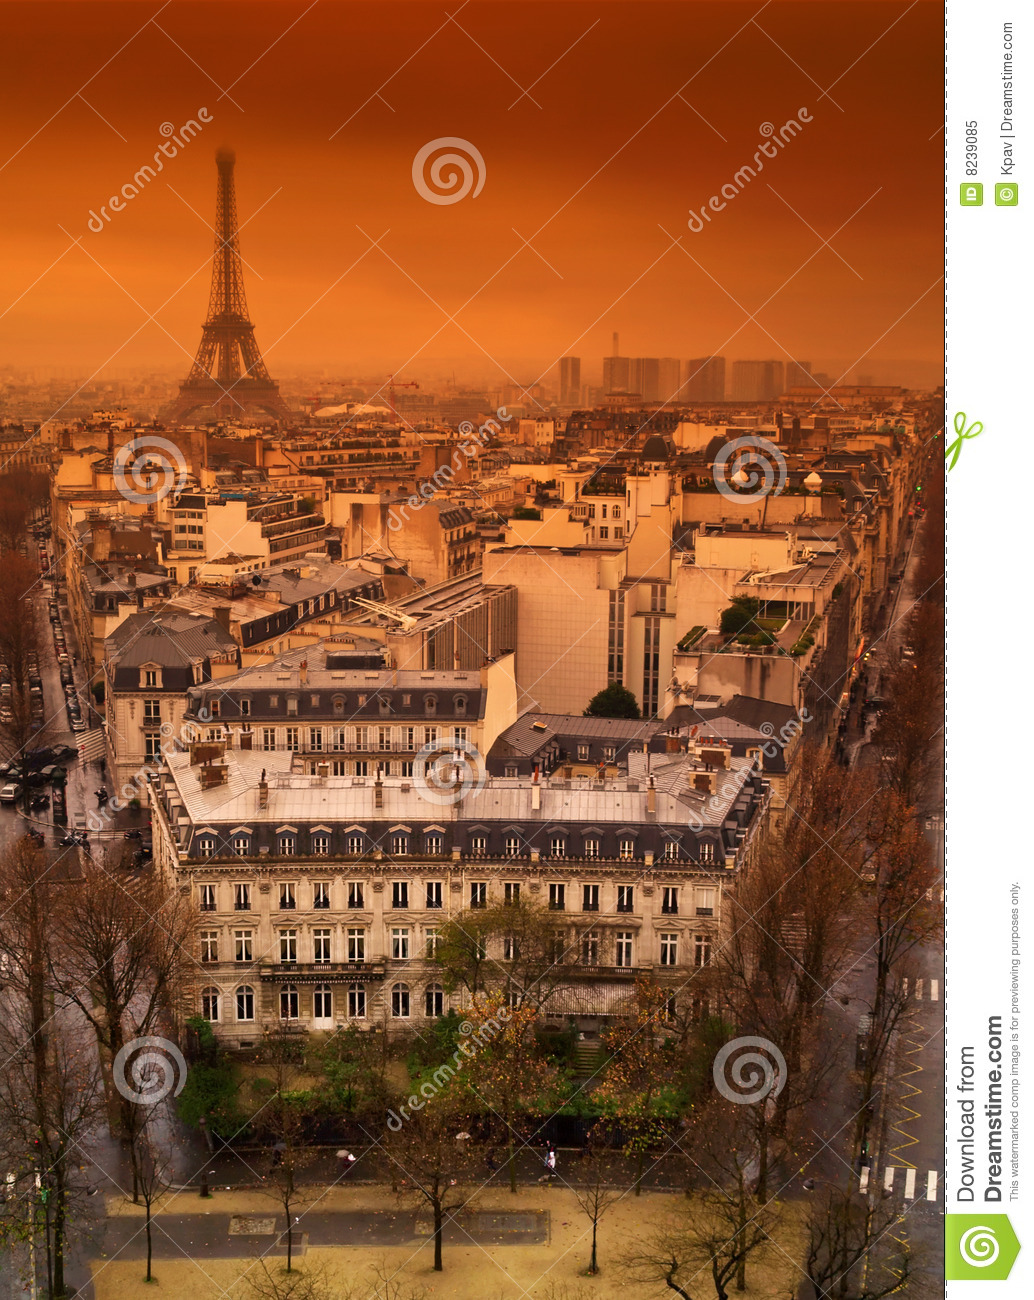 Paris rooftops with Eiffel tower.